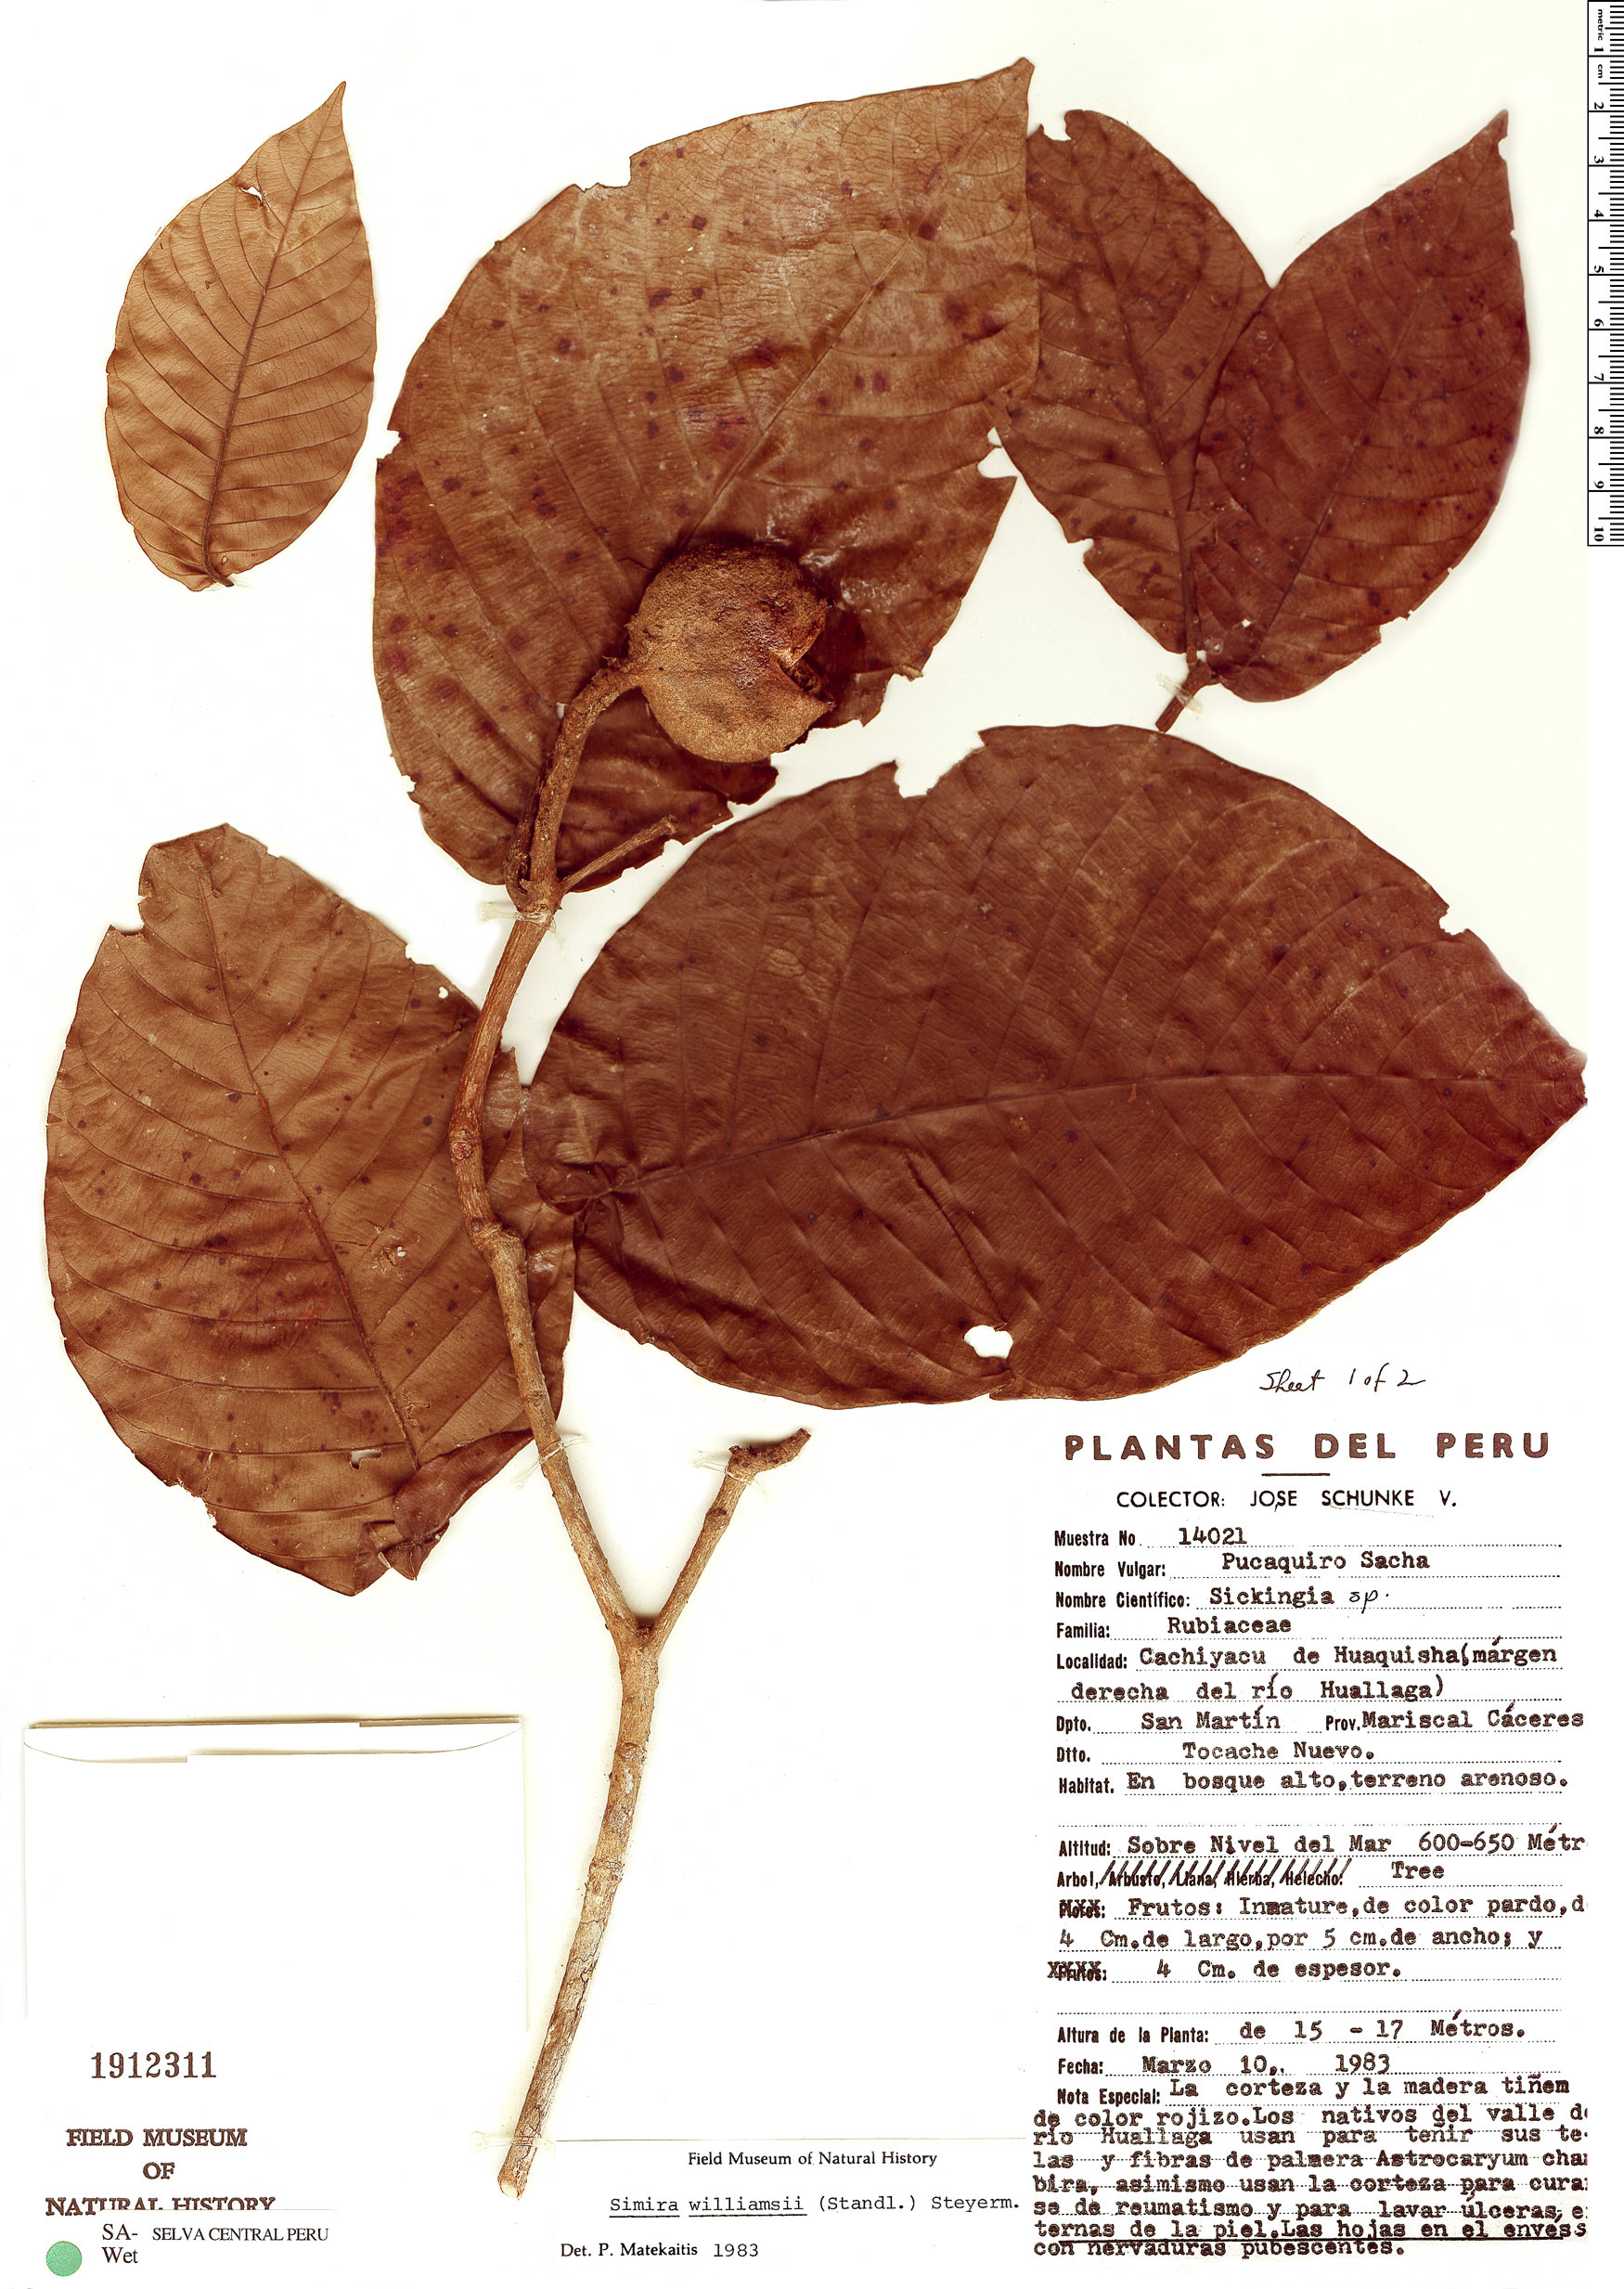 Specimen: Simira williamsii